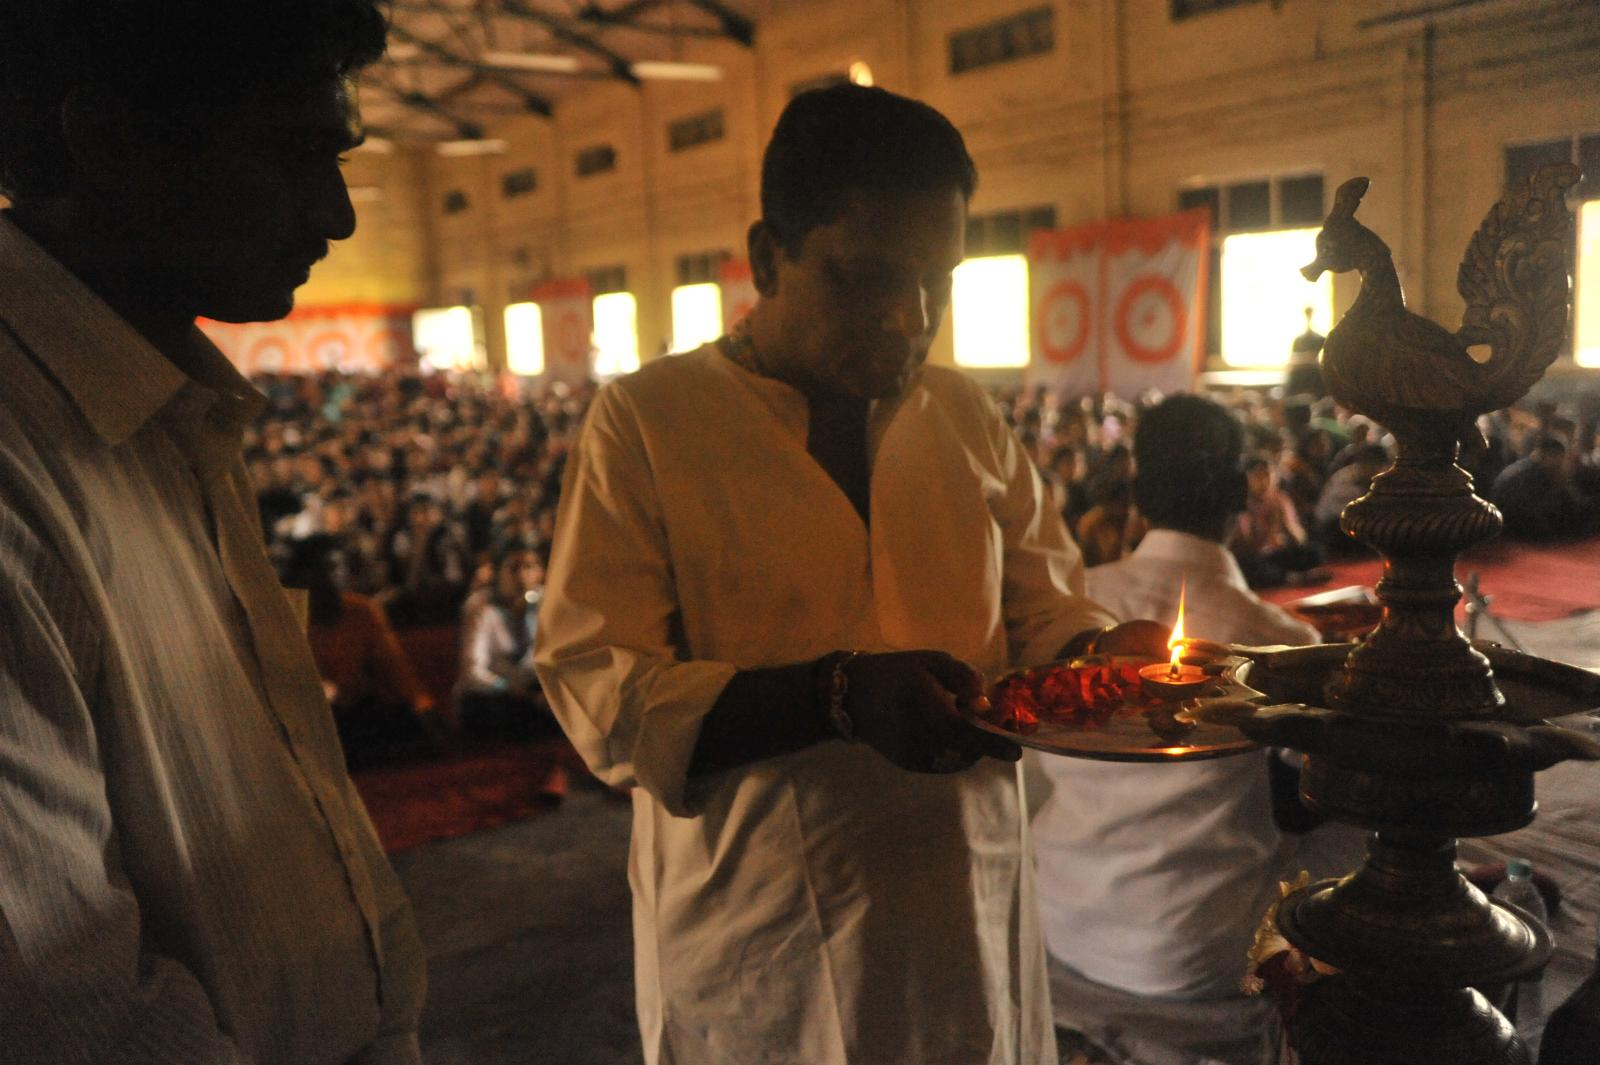 Vid. Mambalam Siva (Nadaswaram) lighting the lamp